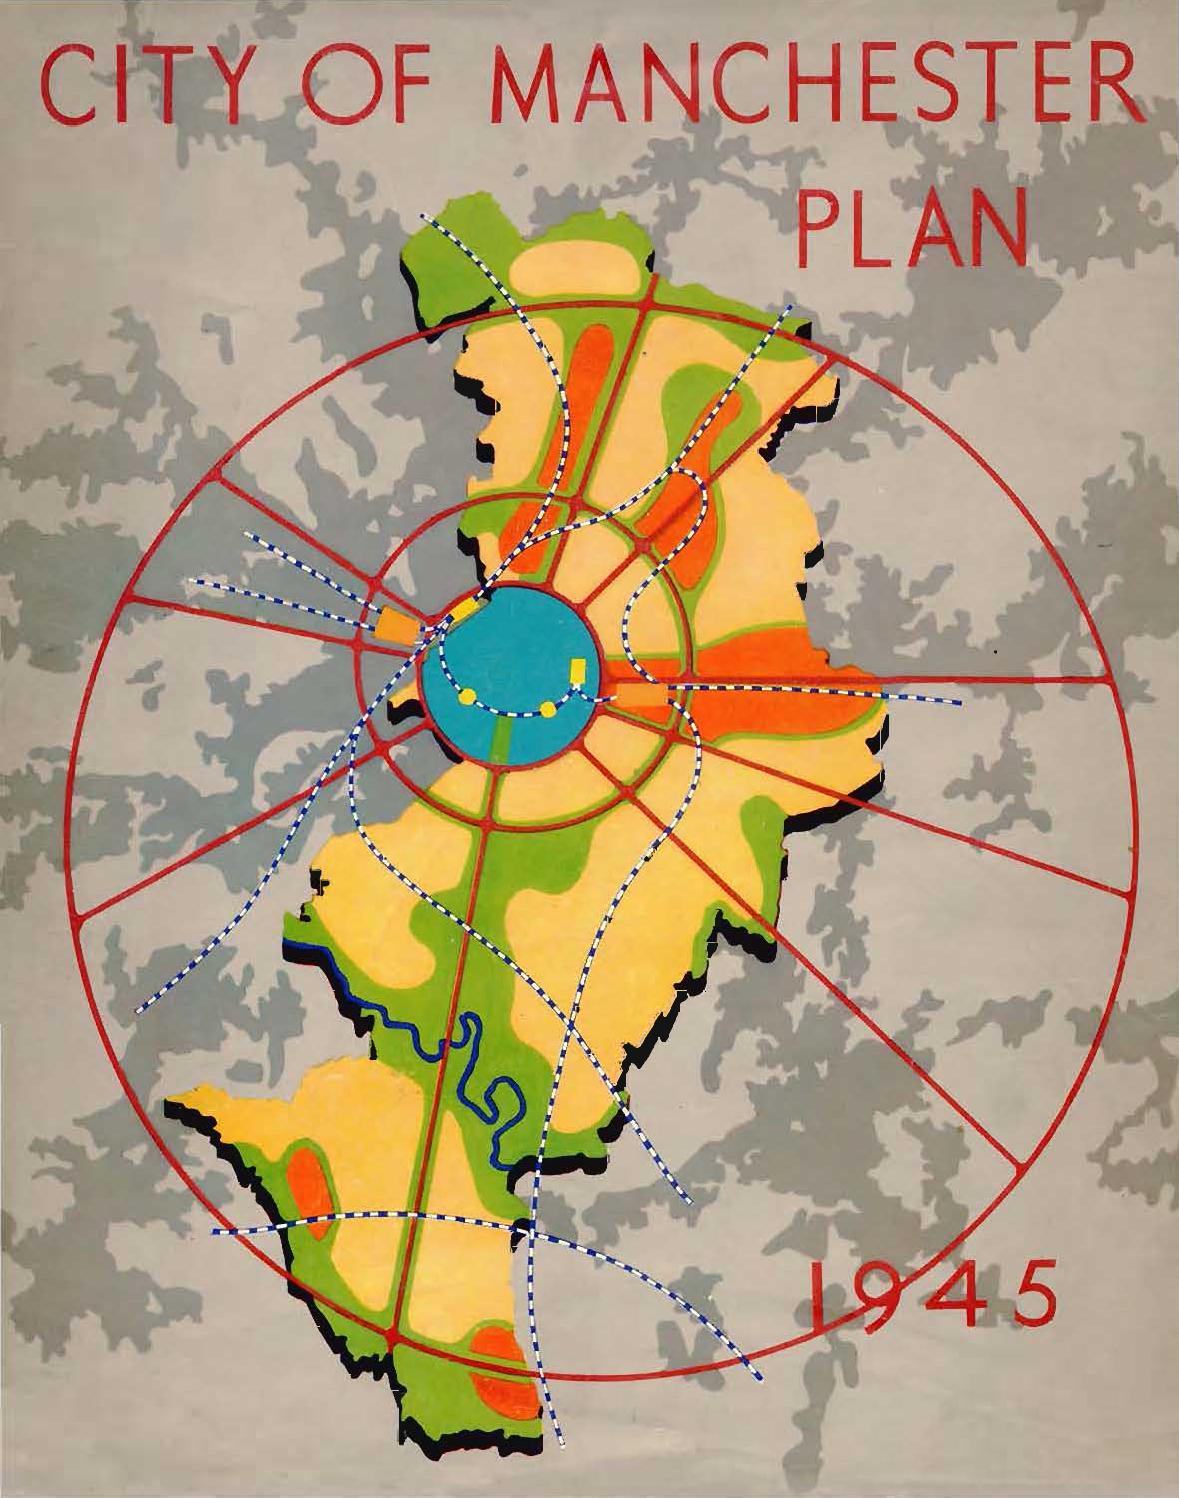 City Of Manchester Plan 1945 By Martin Dodge Issuu Club Car Golf Cart Wiring Diagram Likewise Dc To Ac Converter Circuit